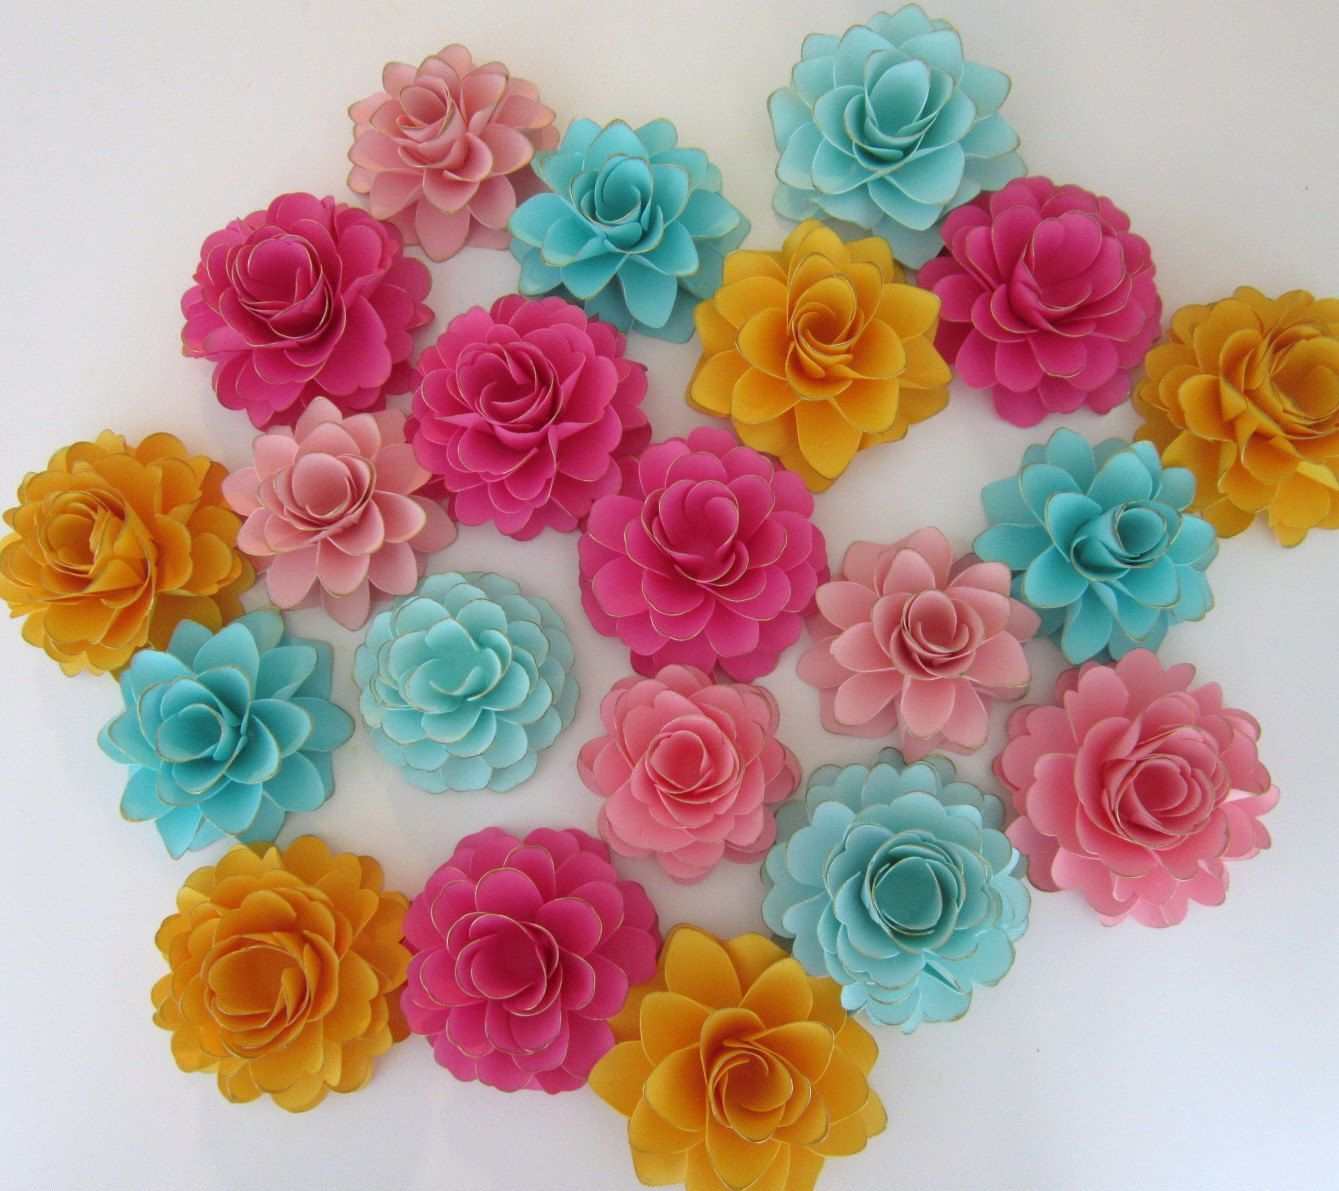 20 Handmade Paper Flowers - Ruffle Roses and Dahlia Collection ...